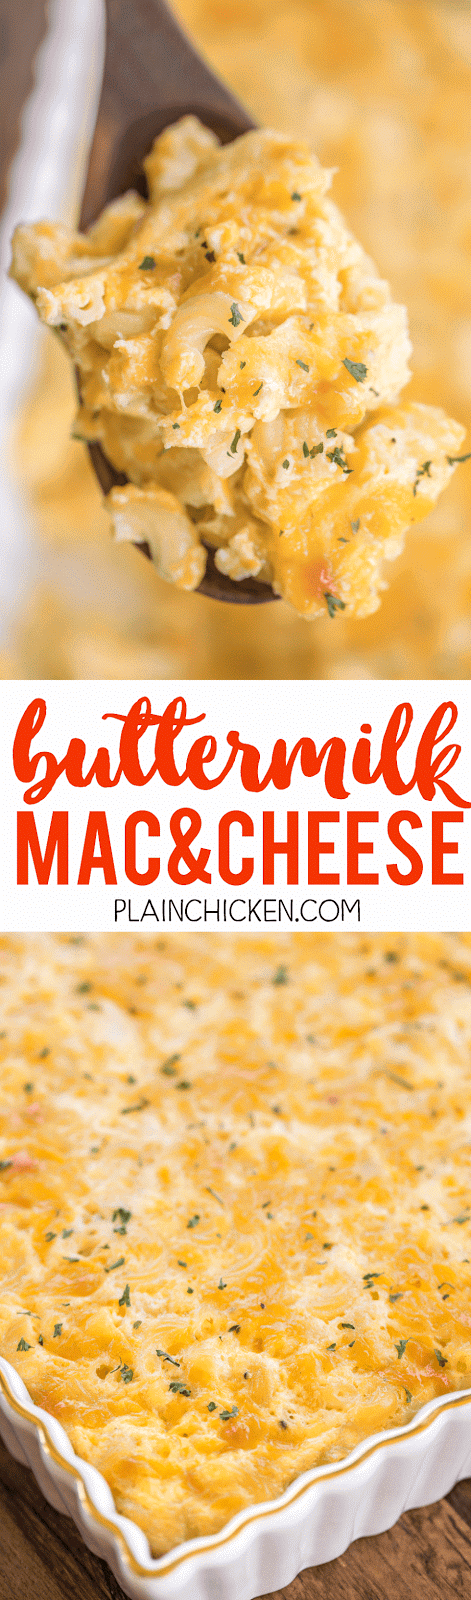 Buttermilk Mac And Cheese Crazy Good Only 5 Ingredients I Wasn T Sure How I Would Like The Buttermilk But It Was So Good Recipes Buttermilk Recipes Food